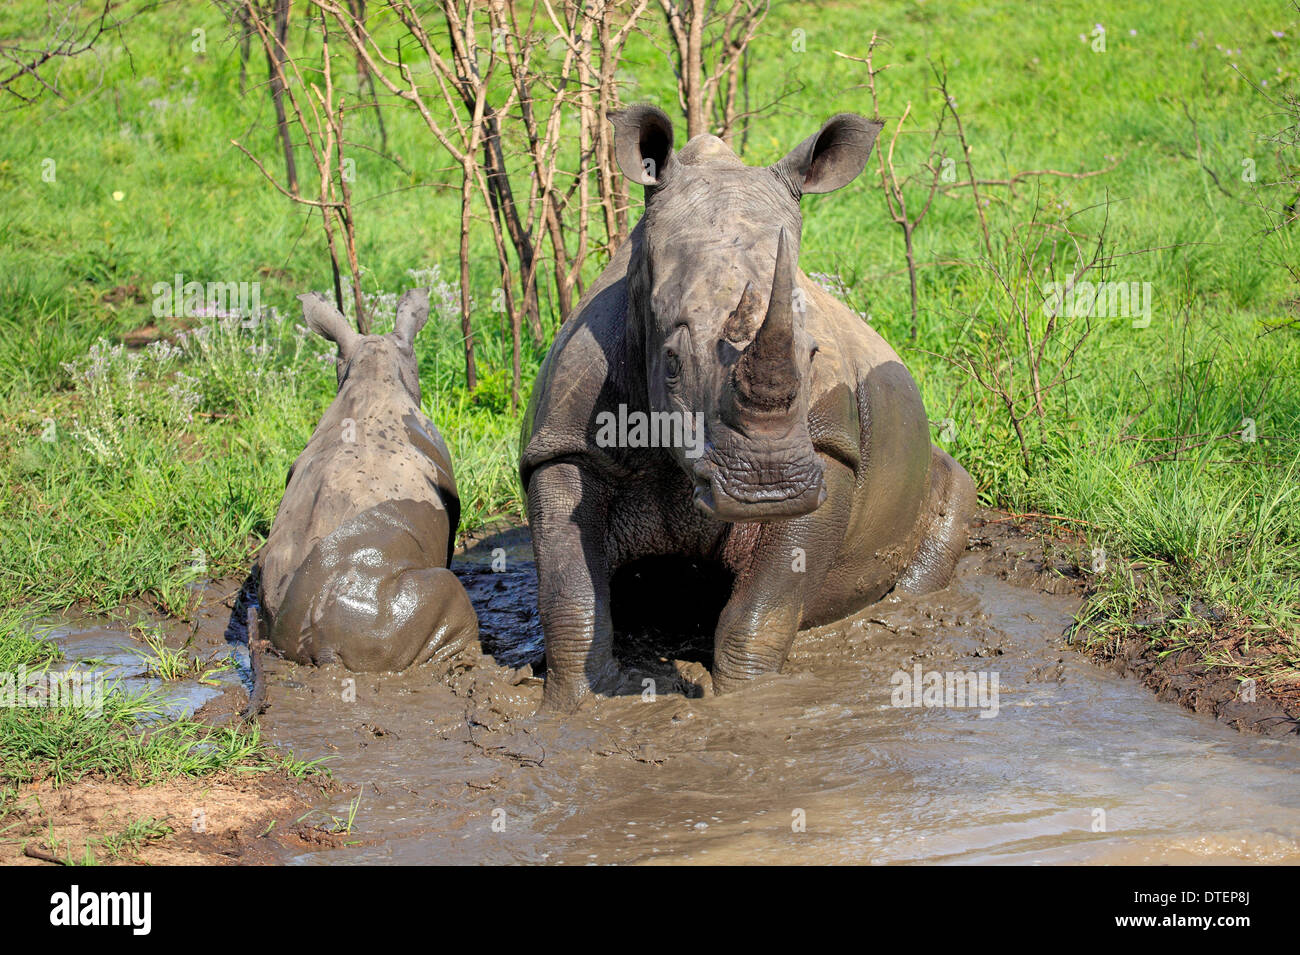 Wide-mouthed Rhinoceros, female with young, taking mudbath, Sabi Sabi Game Reserve, Kruger national park, South Africa / - Stock Image